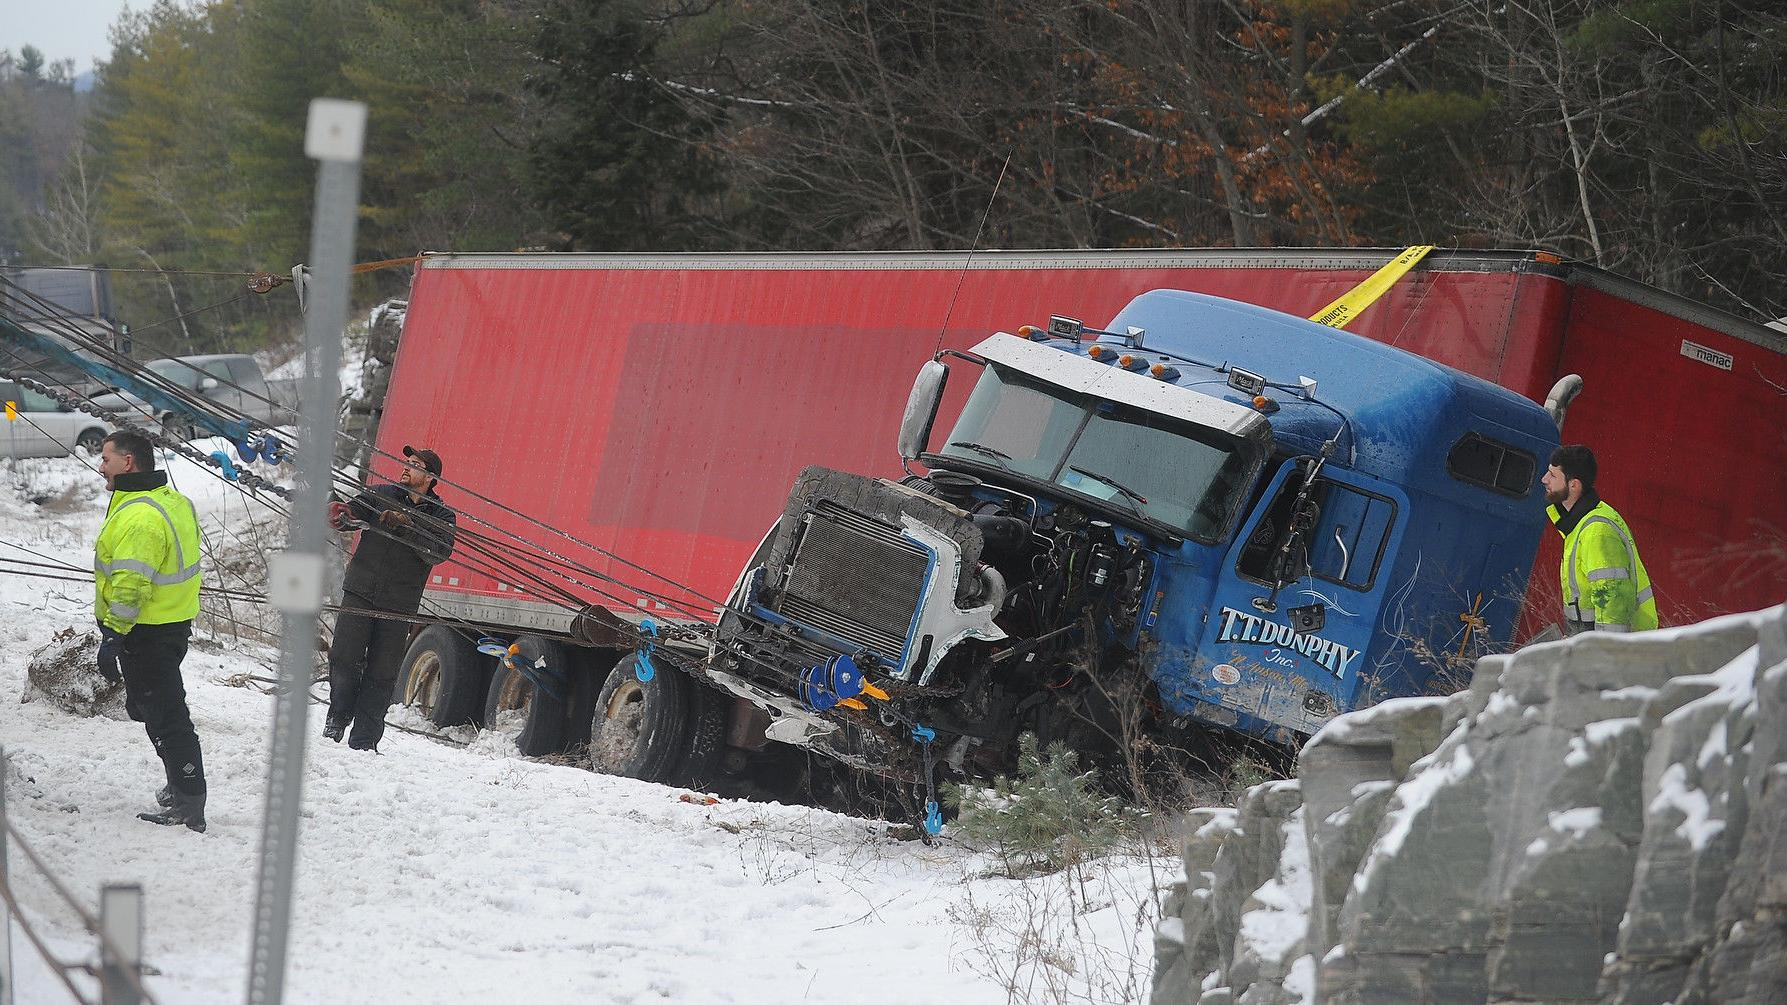 http://poststar.com/news/local/truck-crash-fouls-route-traffic-in-fort-ann/article_29abcc9c-05e2-531f-9441-847b4e5be53c.html